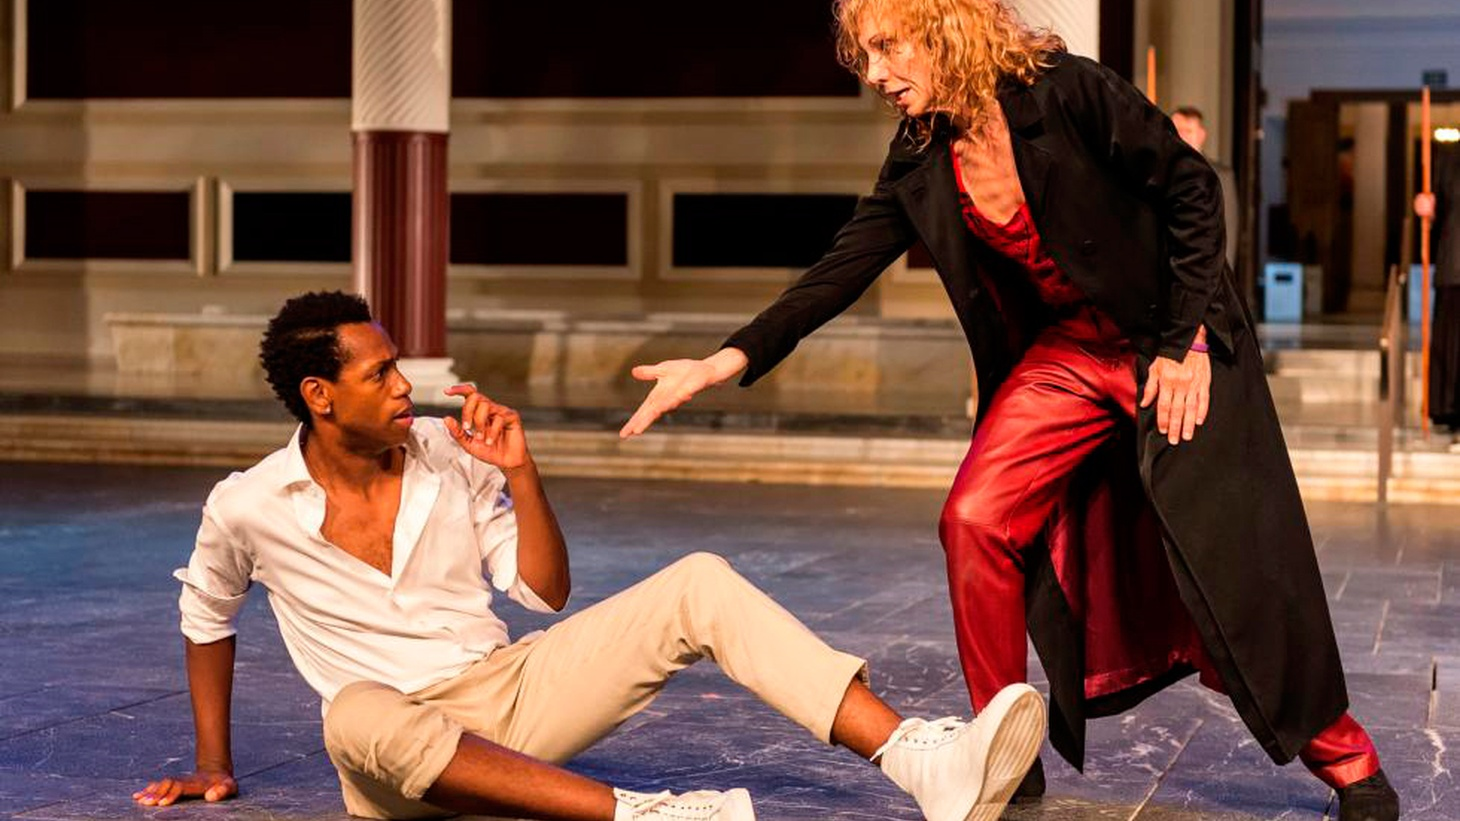 The question of the classical soul is always looming in the air for the Getty Villa's annual outdoor drama.